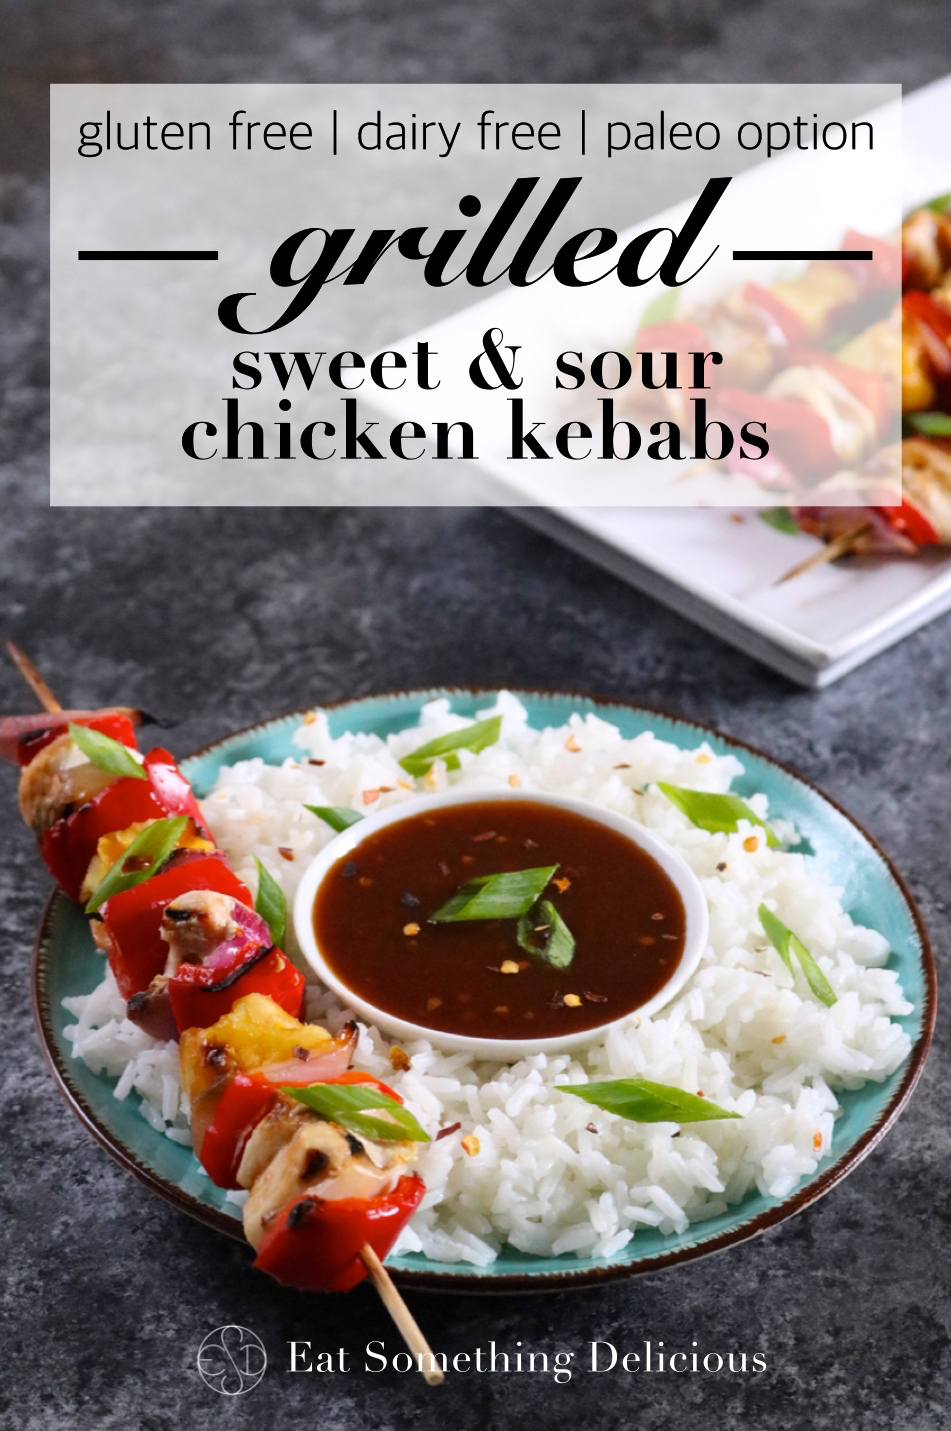 Grilled Sweet & Sour Chicken Kebabs | Put these kebabs on the grill for an outdoor cooking spin on sweet & sour chicken with less mess. This recipe is gluten and dairy free with a paleo option. | eatsomethingdelicious.com